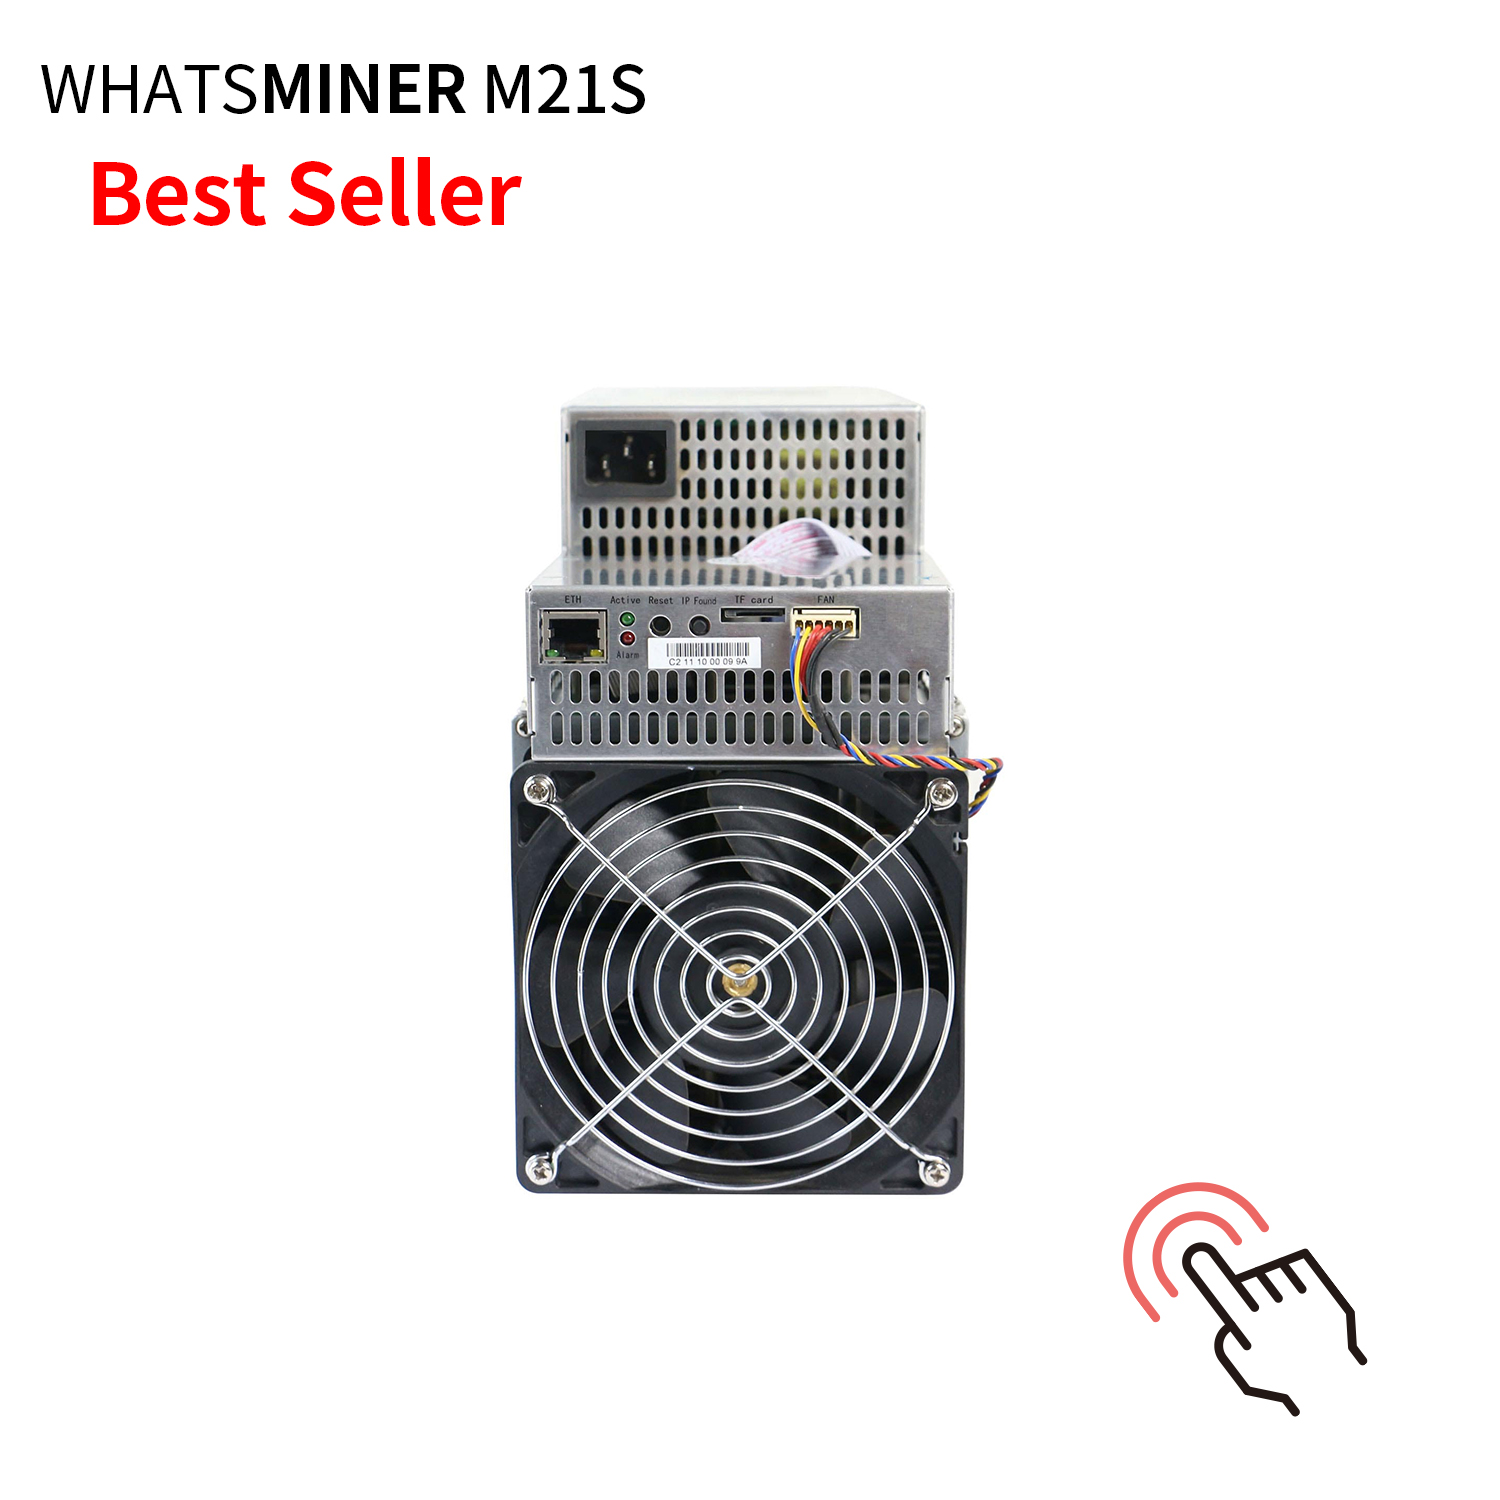 2020 Stable quality blockchain Whatsminer M21S 56Th/s 3360W SHA256  ASIC Bitcoin Miner